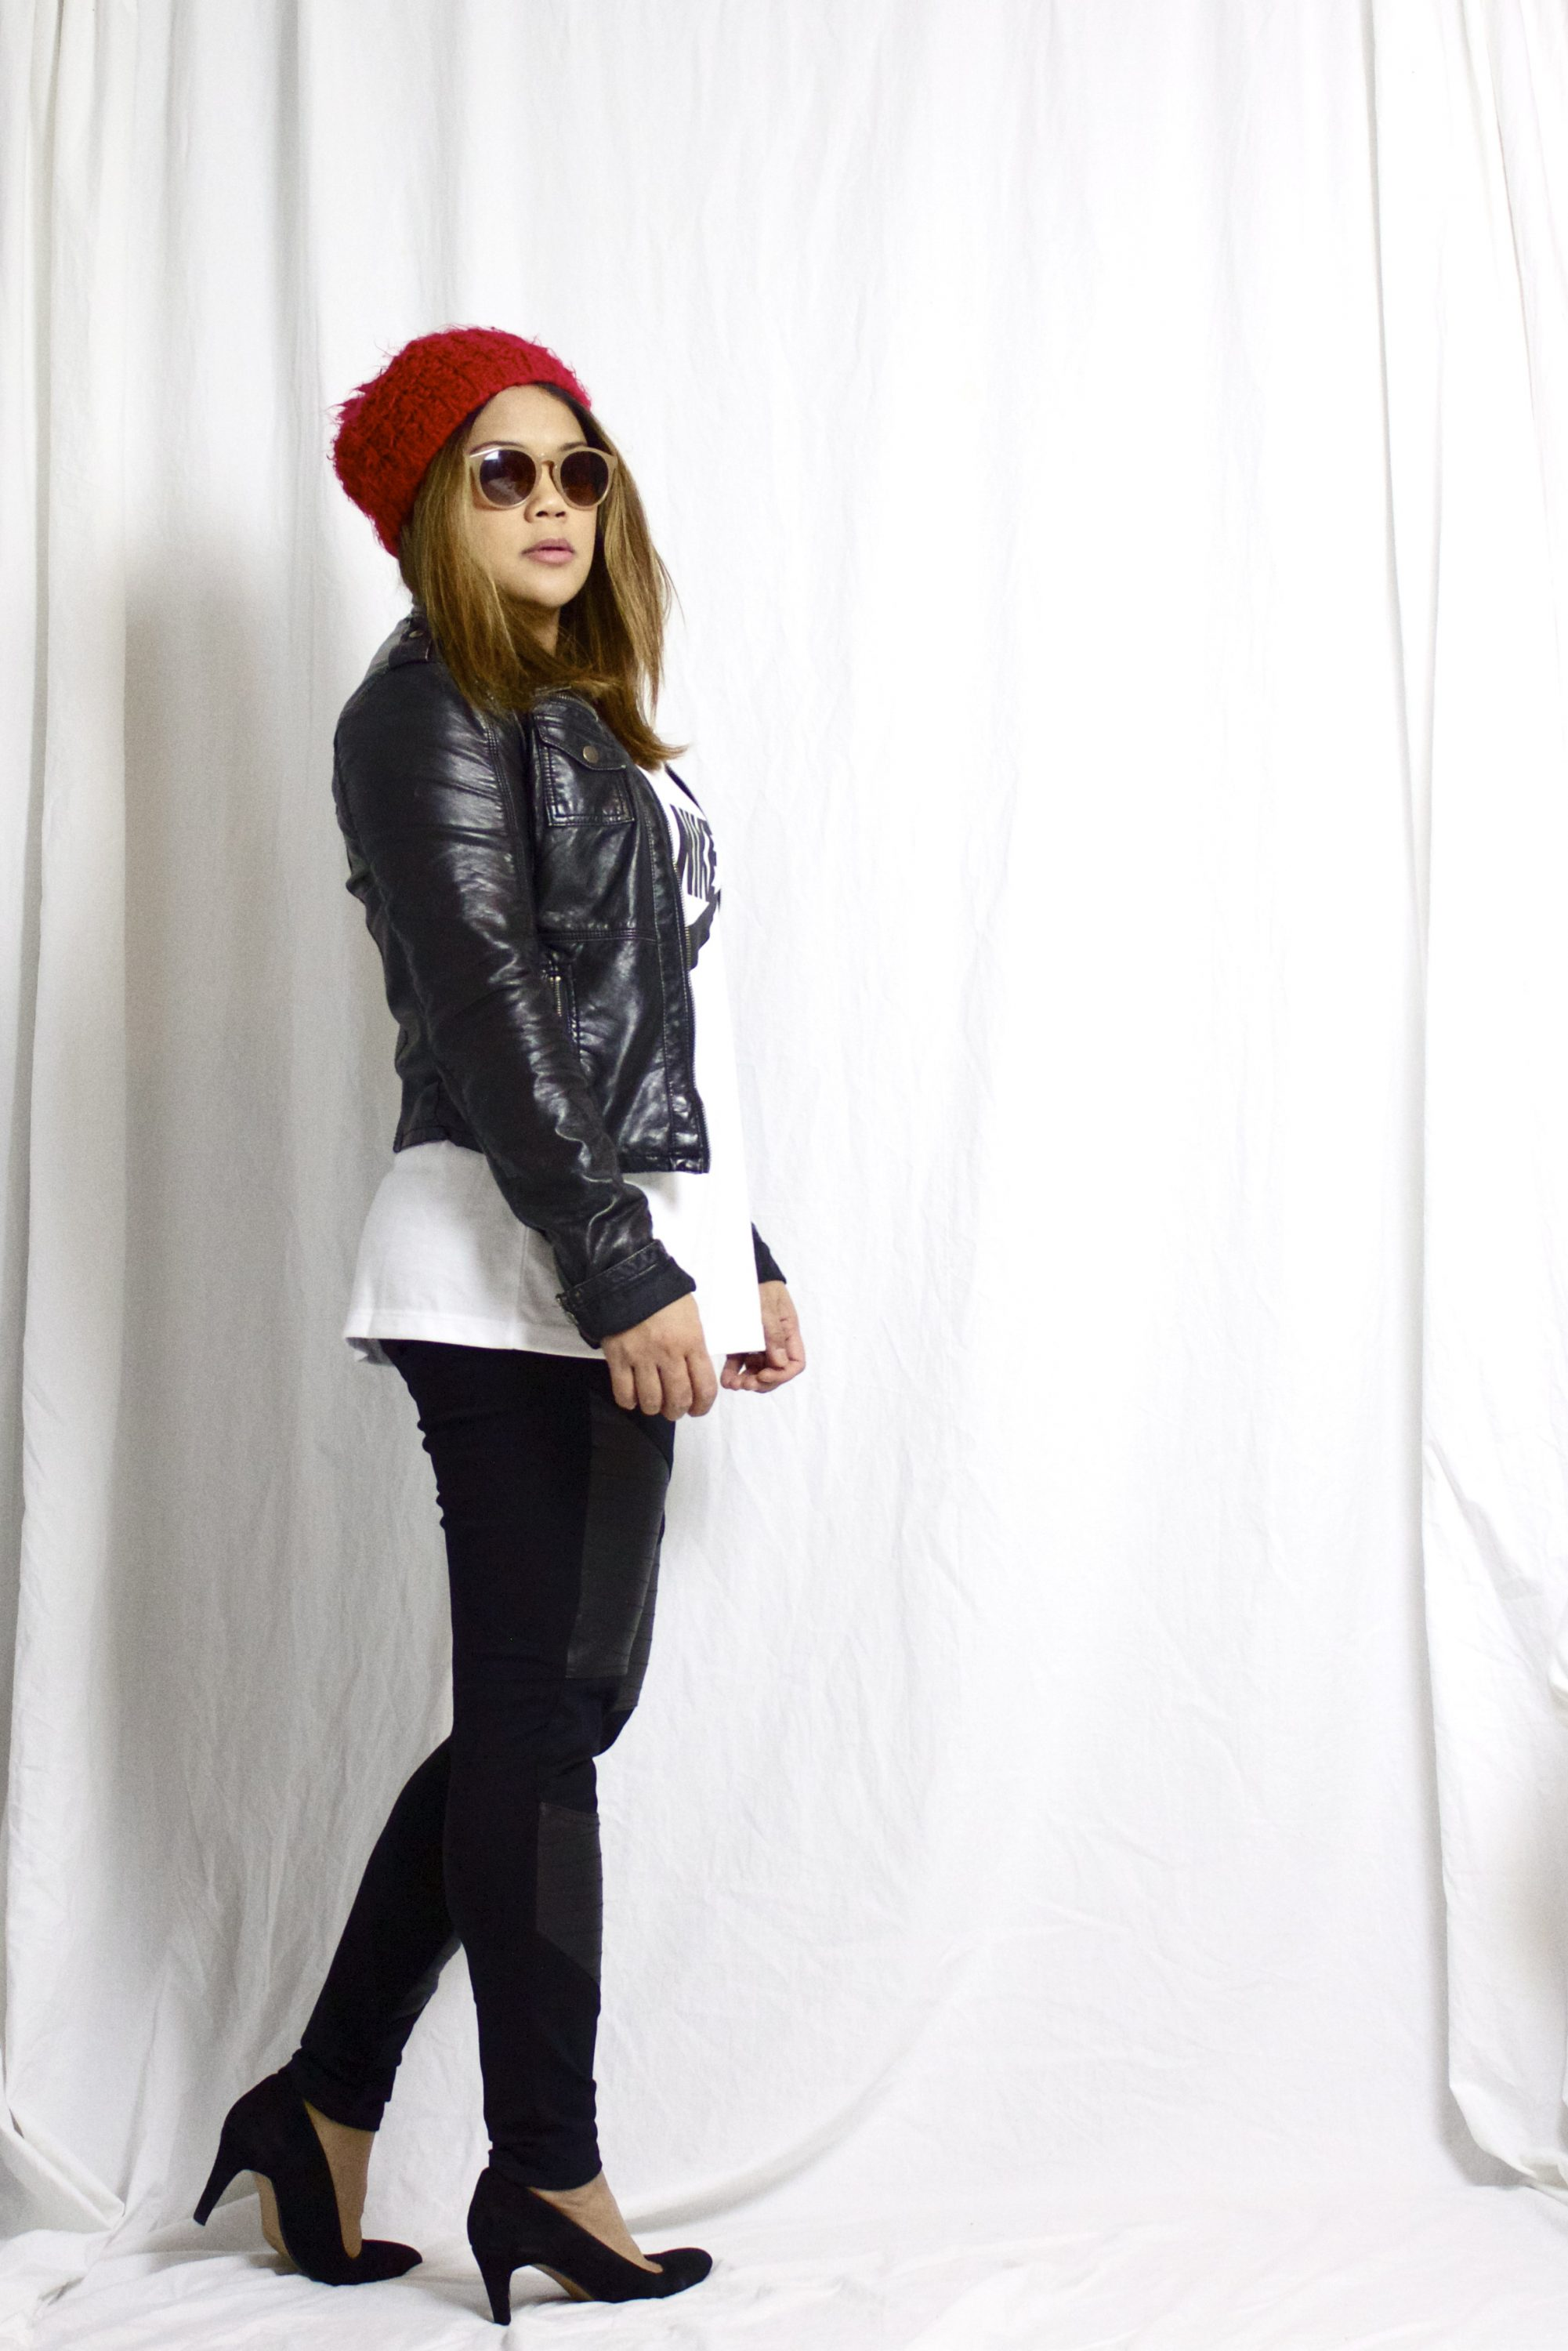 athleisure, street style, red beanie, nude sunglasses, nike top, moto jacket, leather jacket, outfit with leggings, black pumps, pop of color,